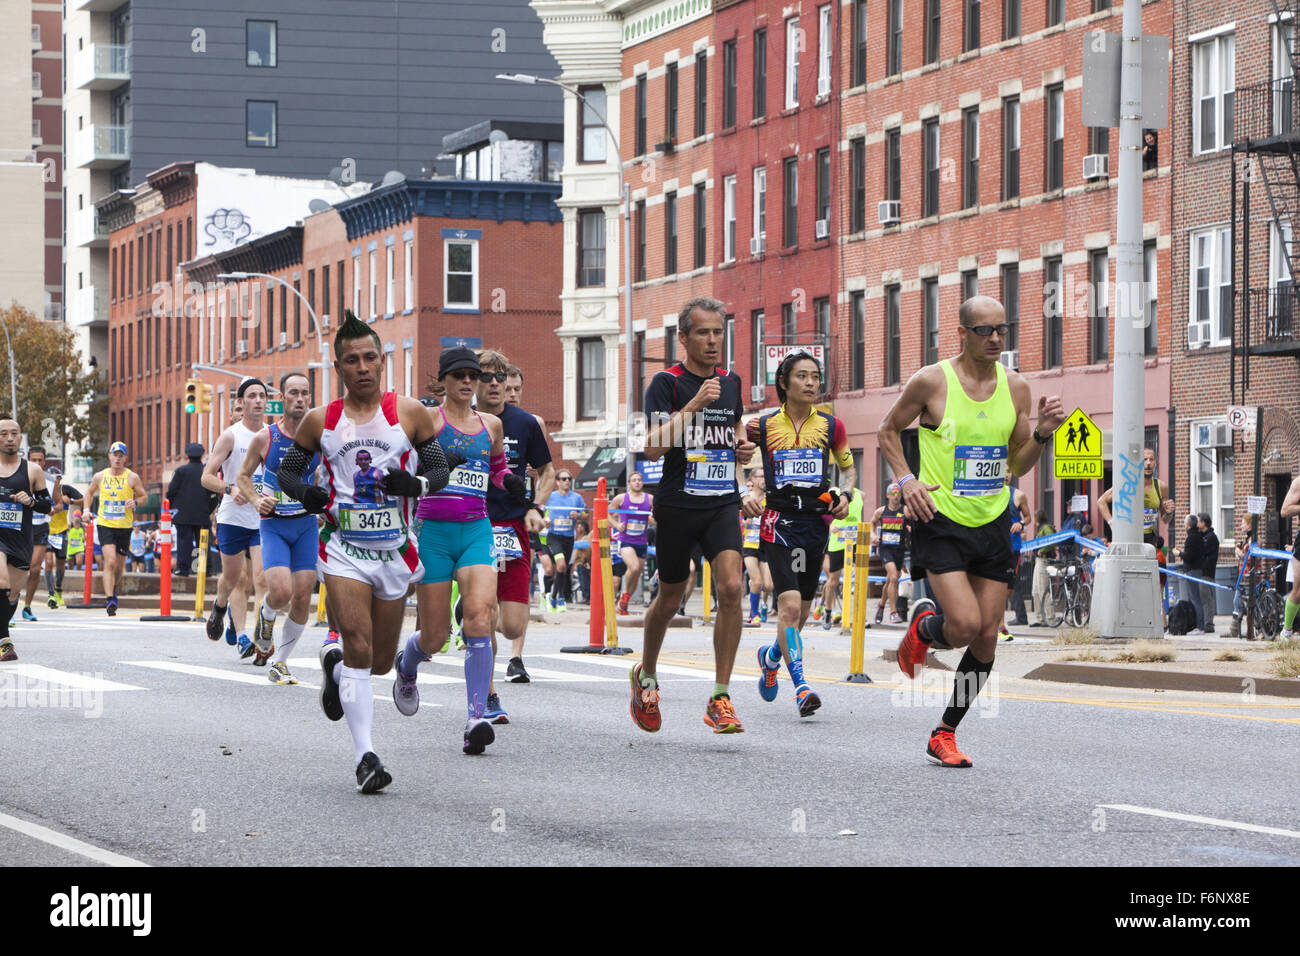 Runners race up 4th Avenue through Park Slope Brooklyn during the 1st leg of the NY City Marathon. - Stock Image